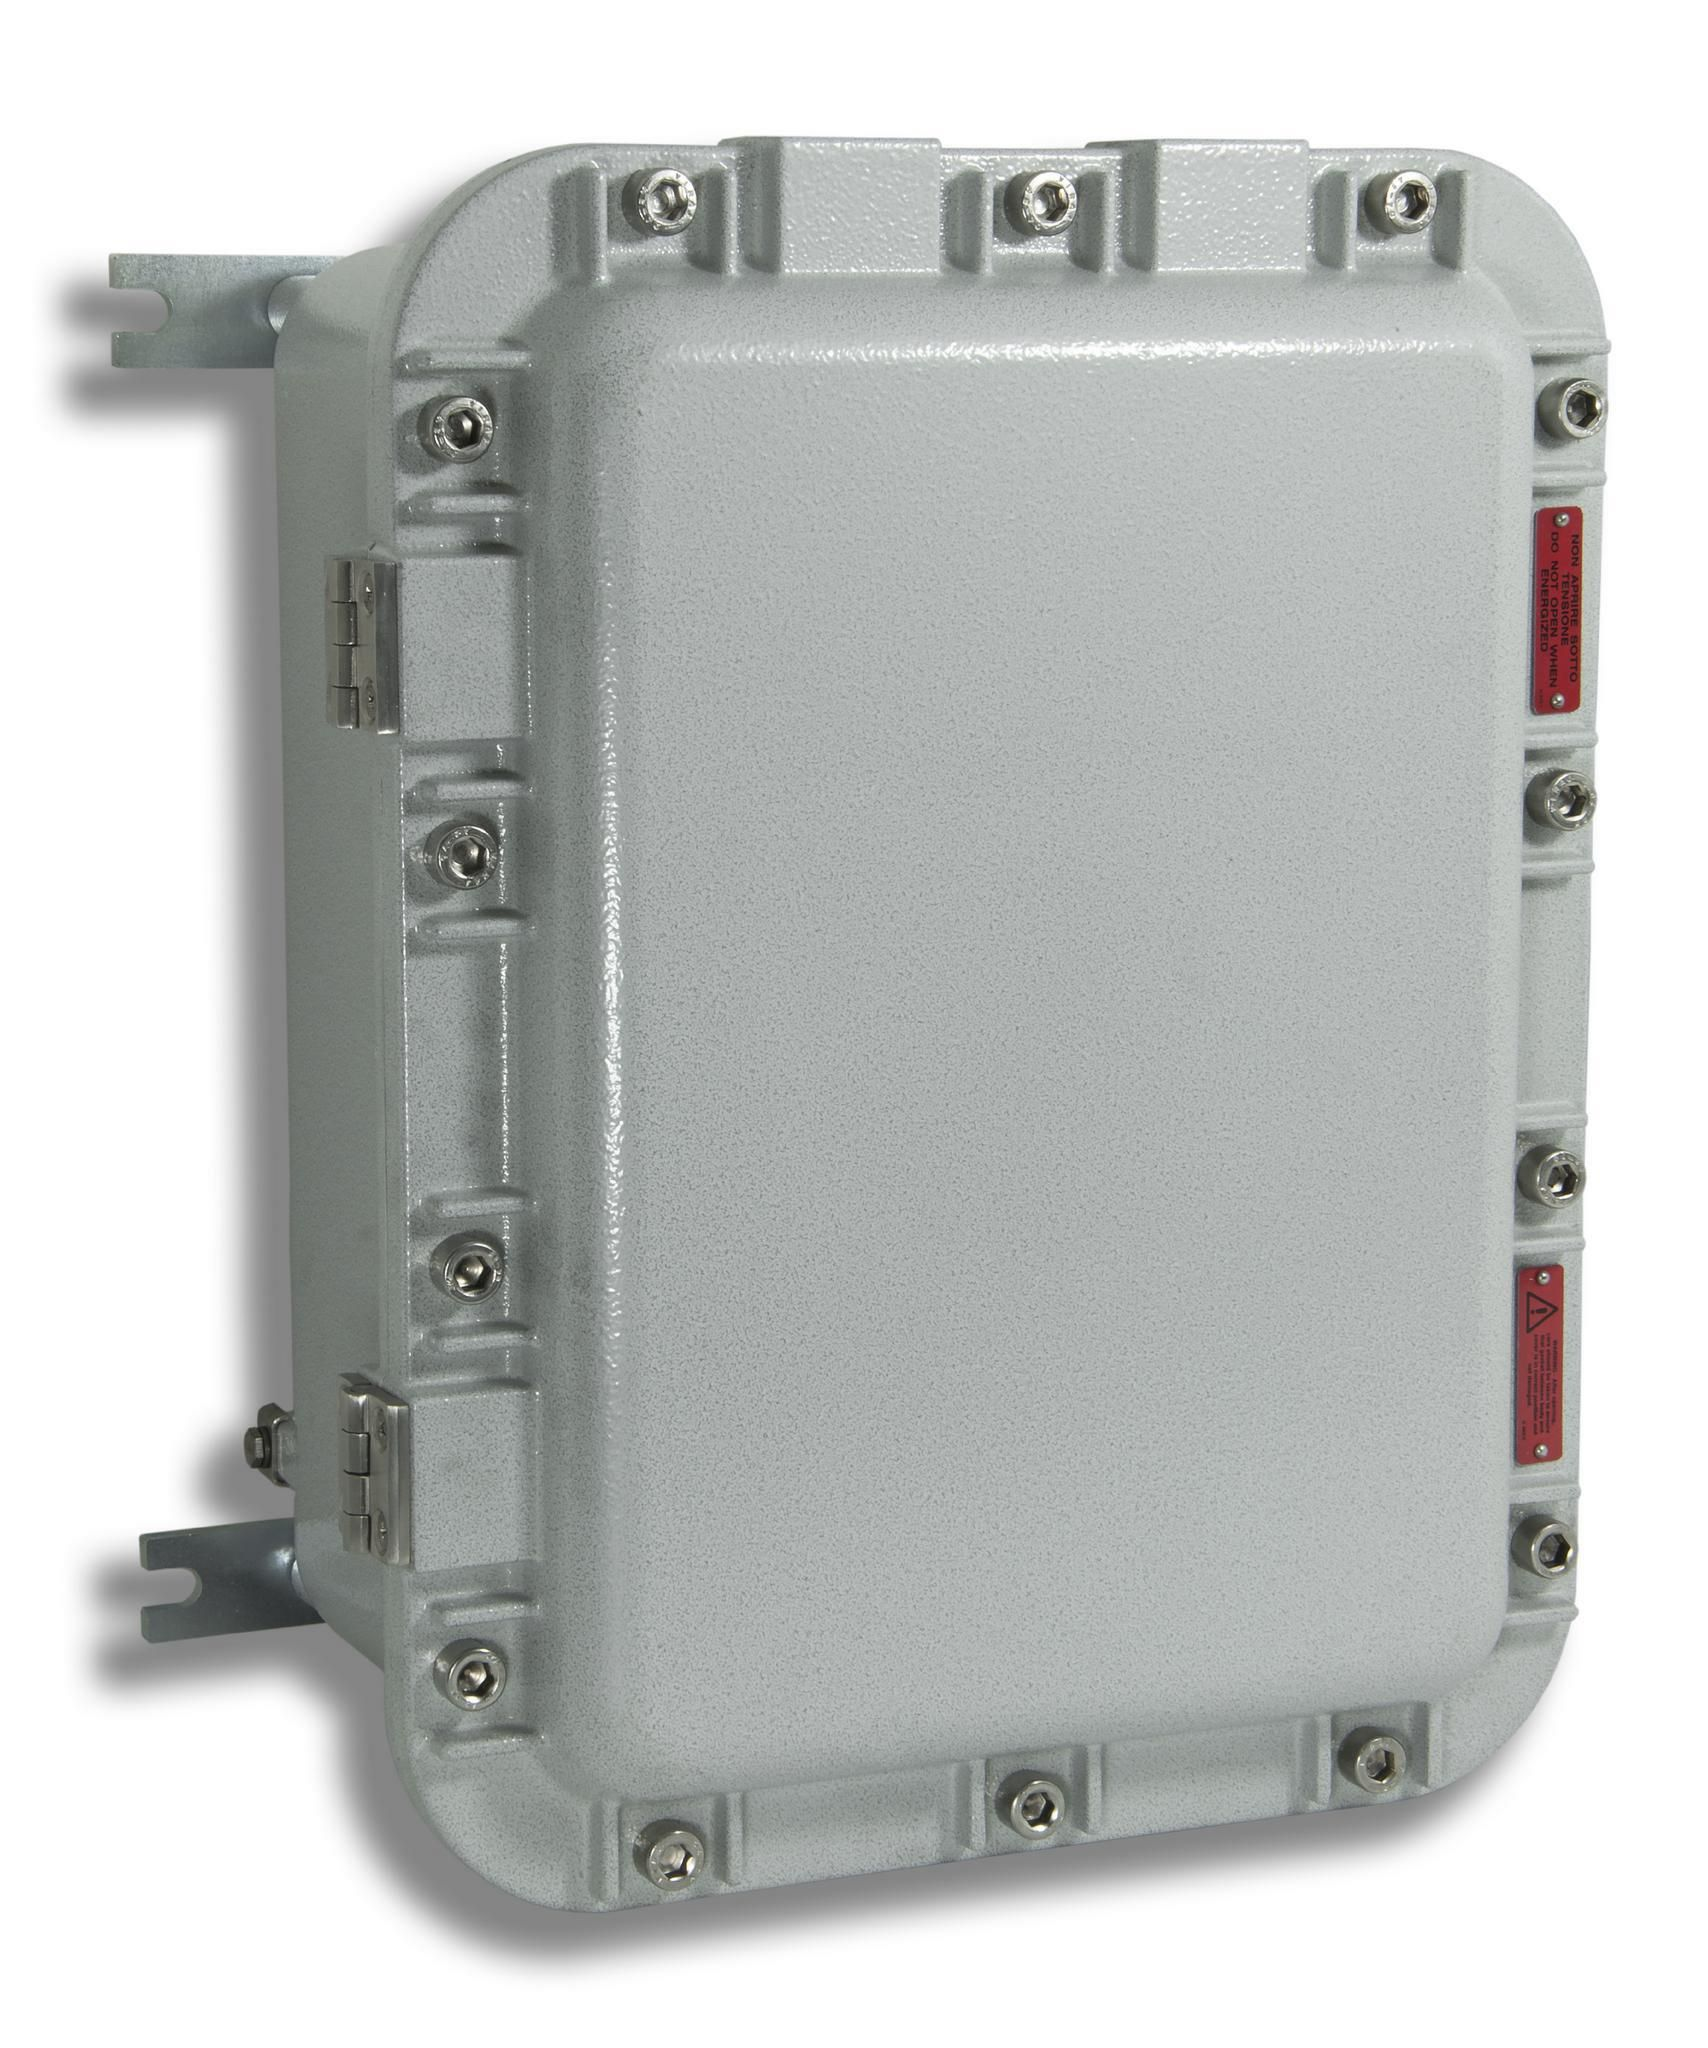 EJB series junction boxes